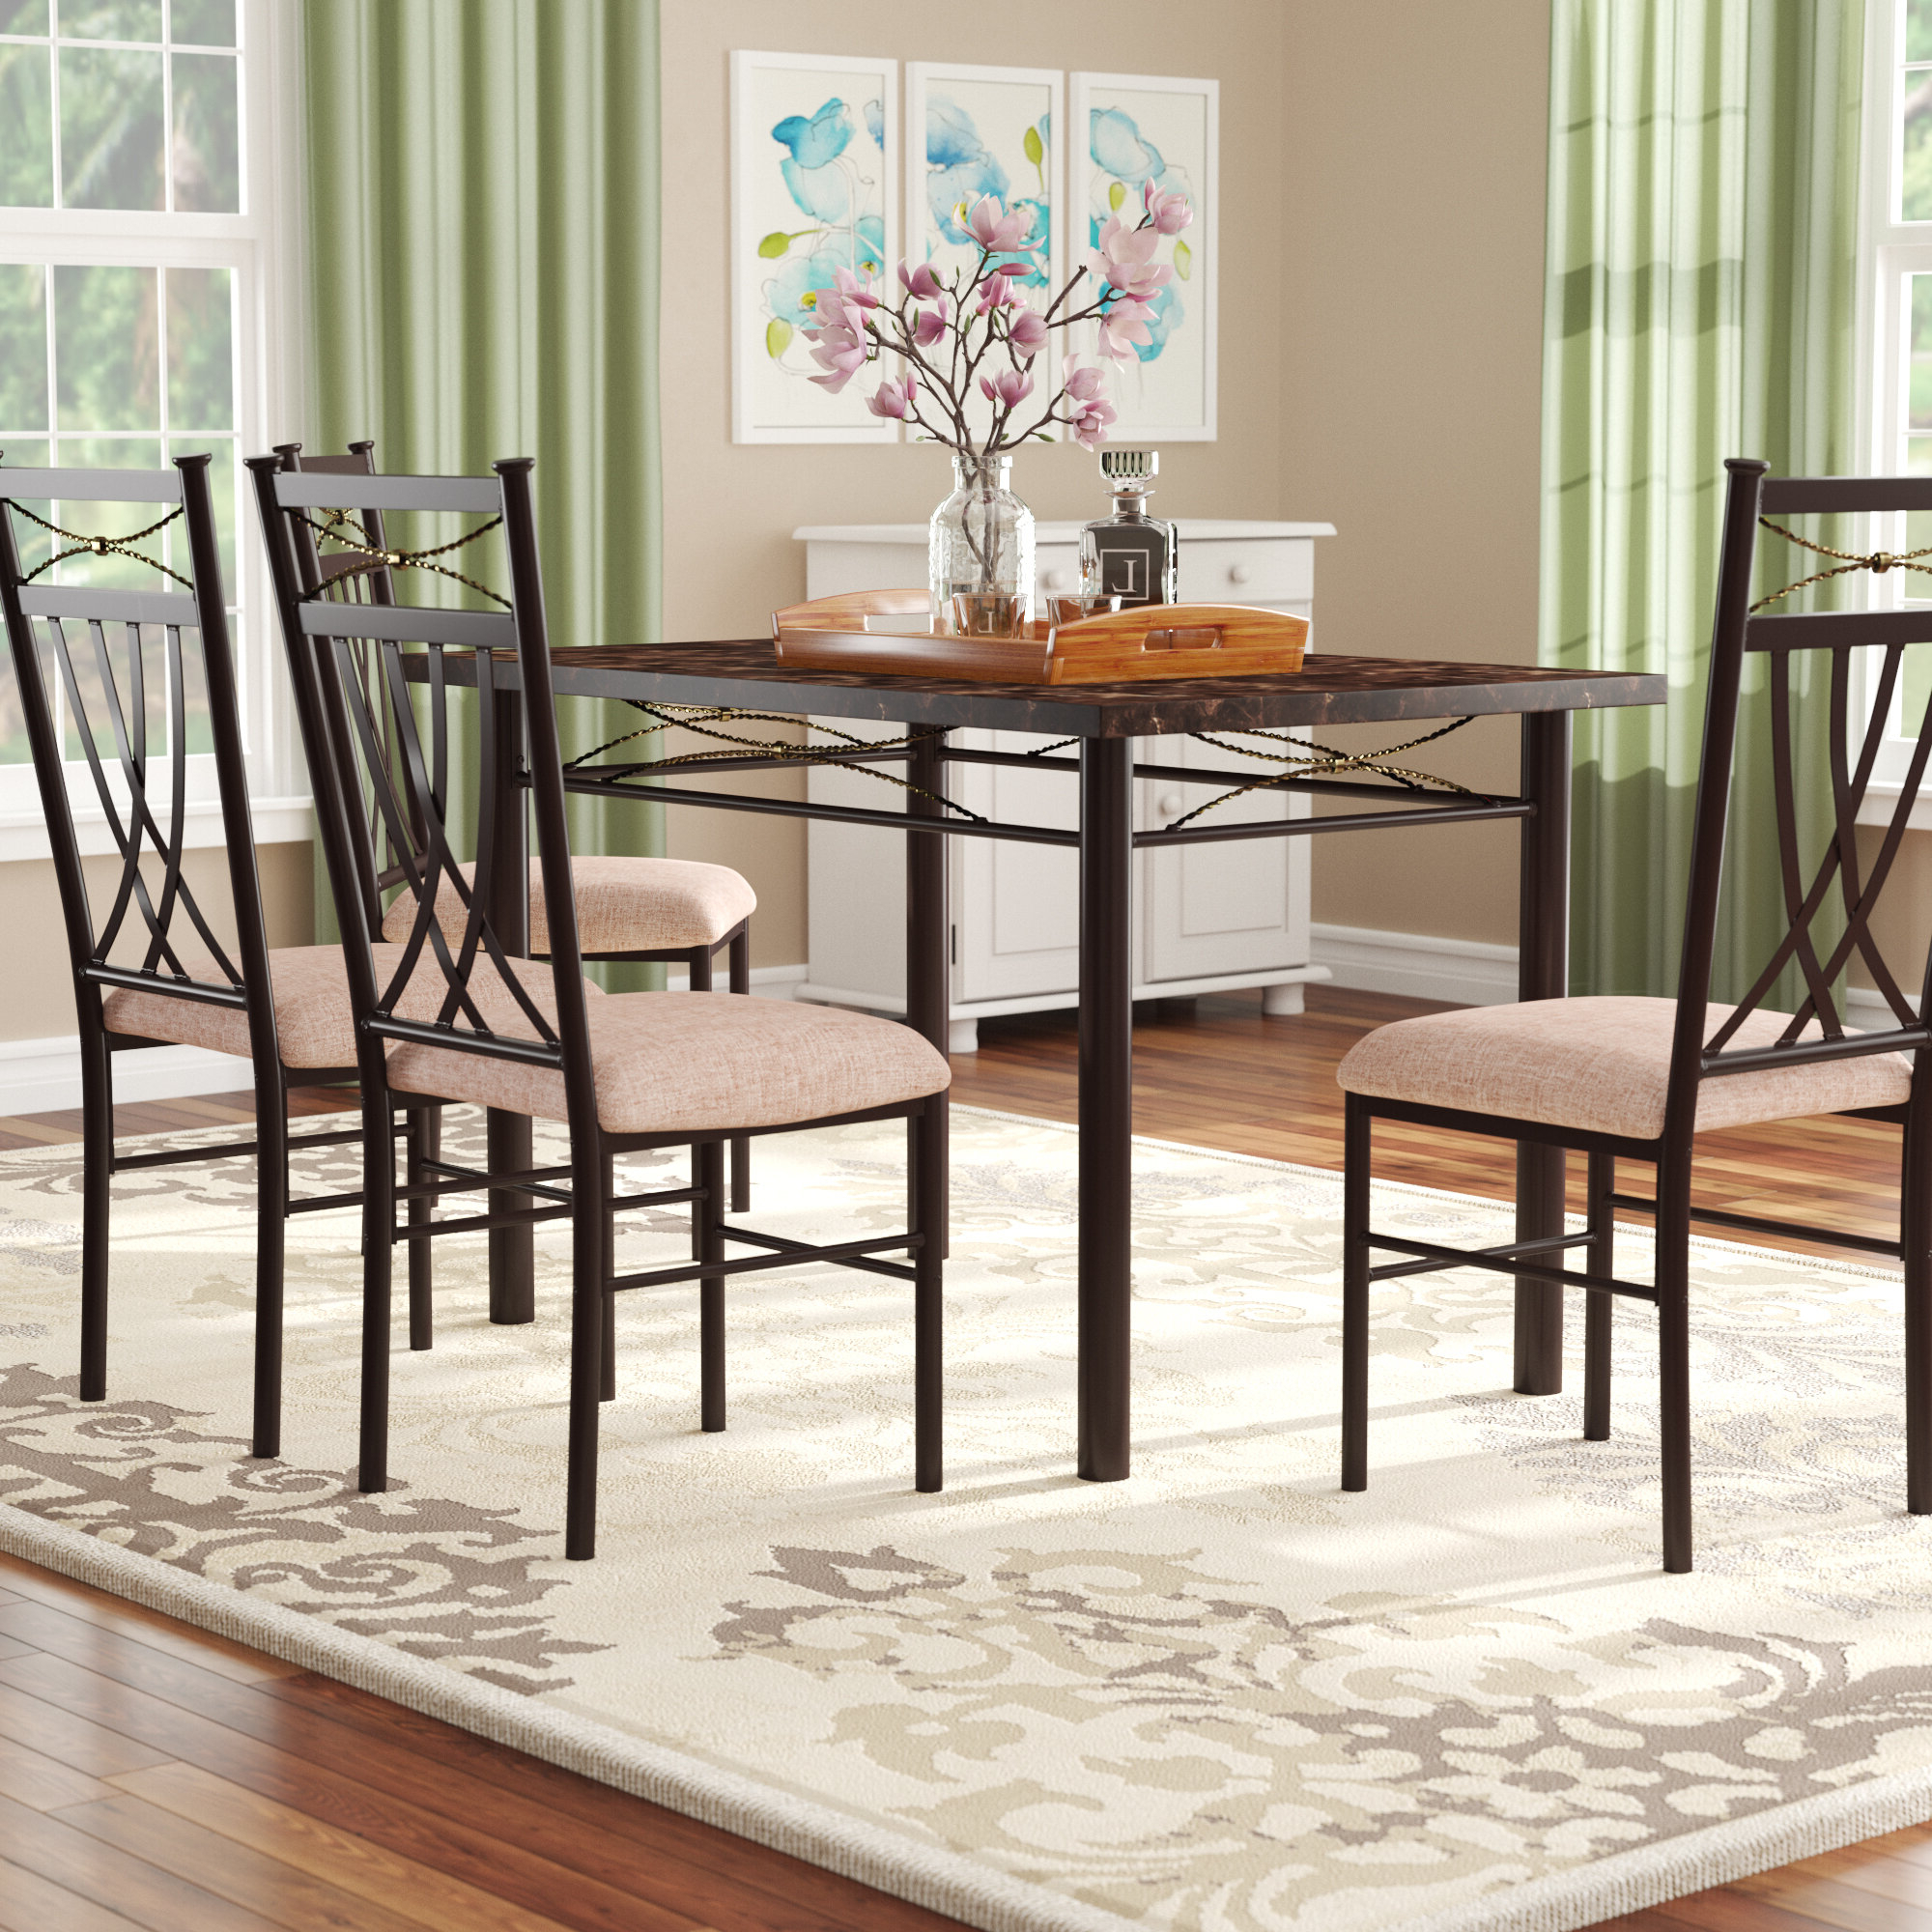 Ganya 5 Piece Dining Sets For Most Up To Date Branden 5 Piece Dining Set (View 7 of 20)